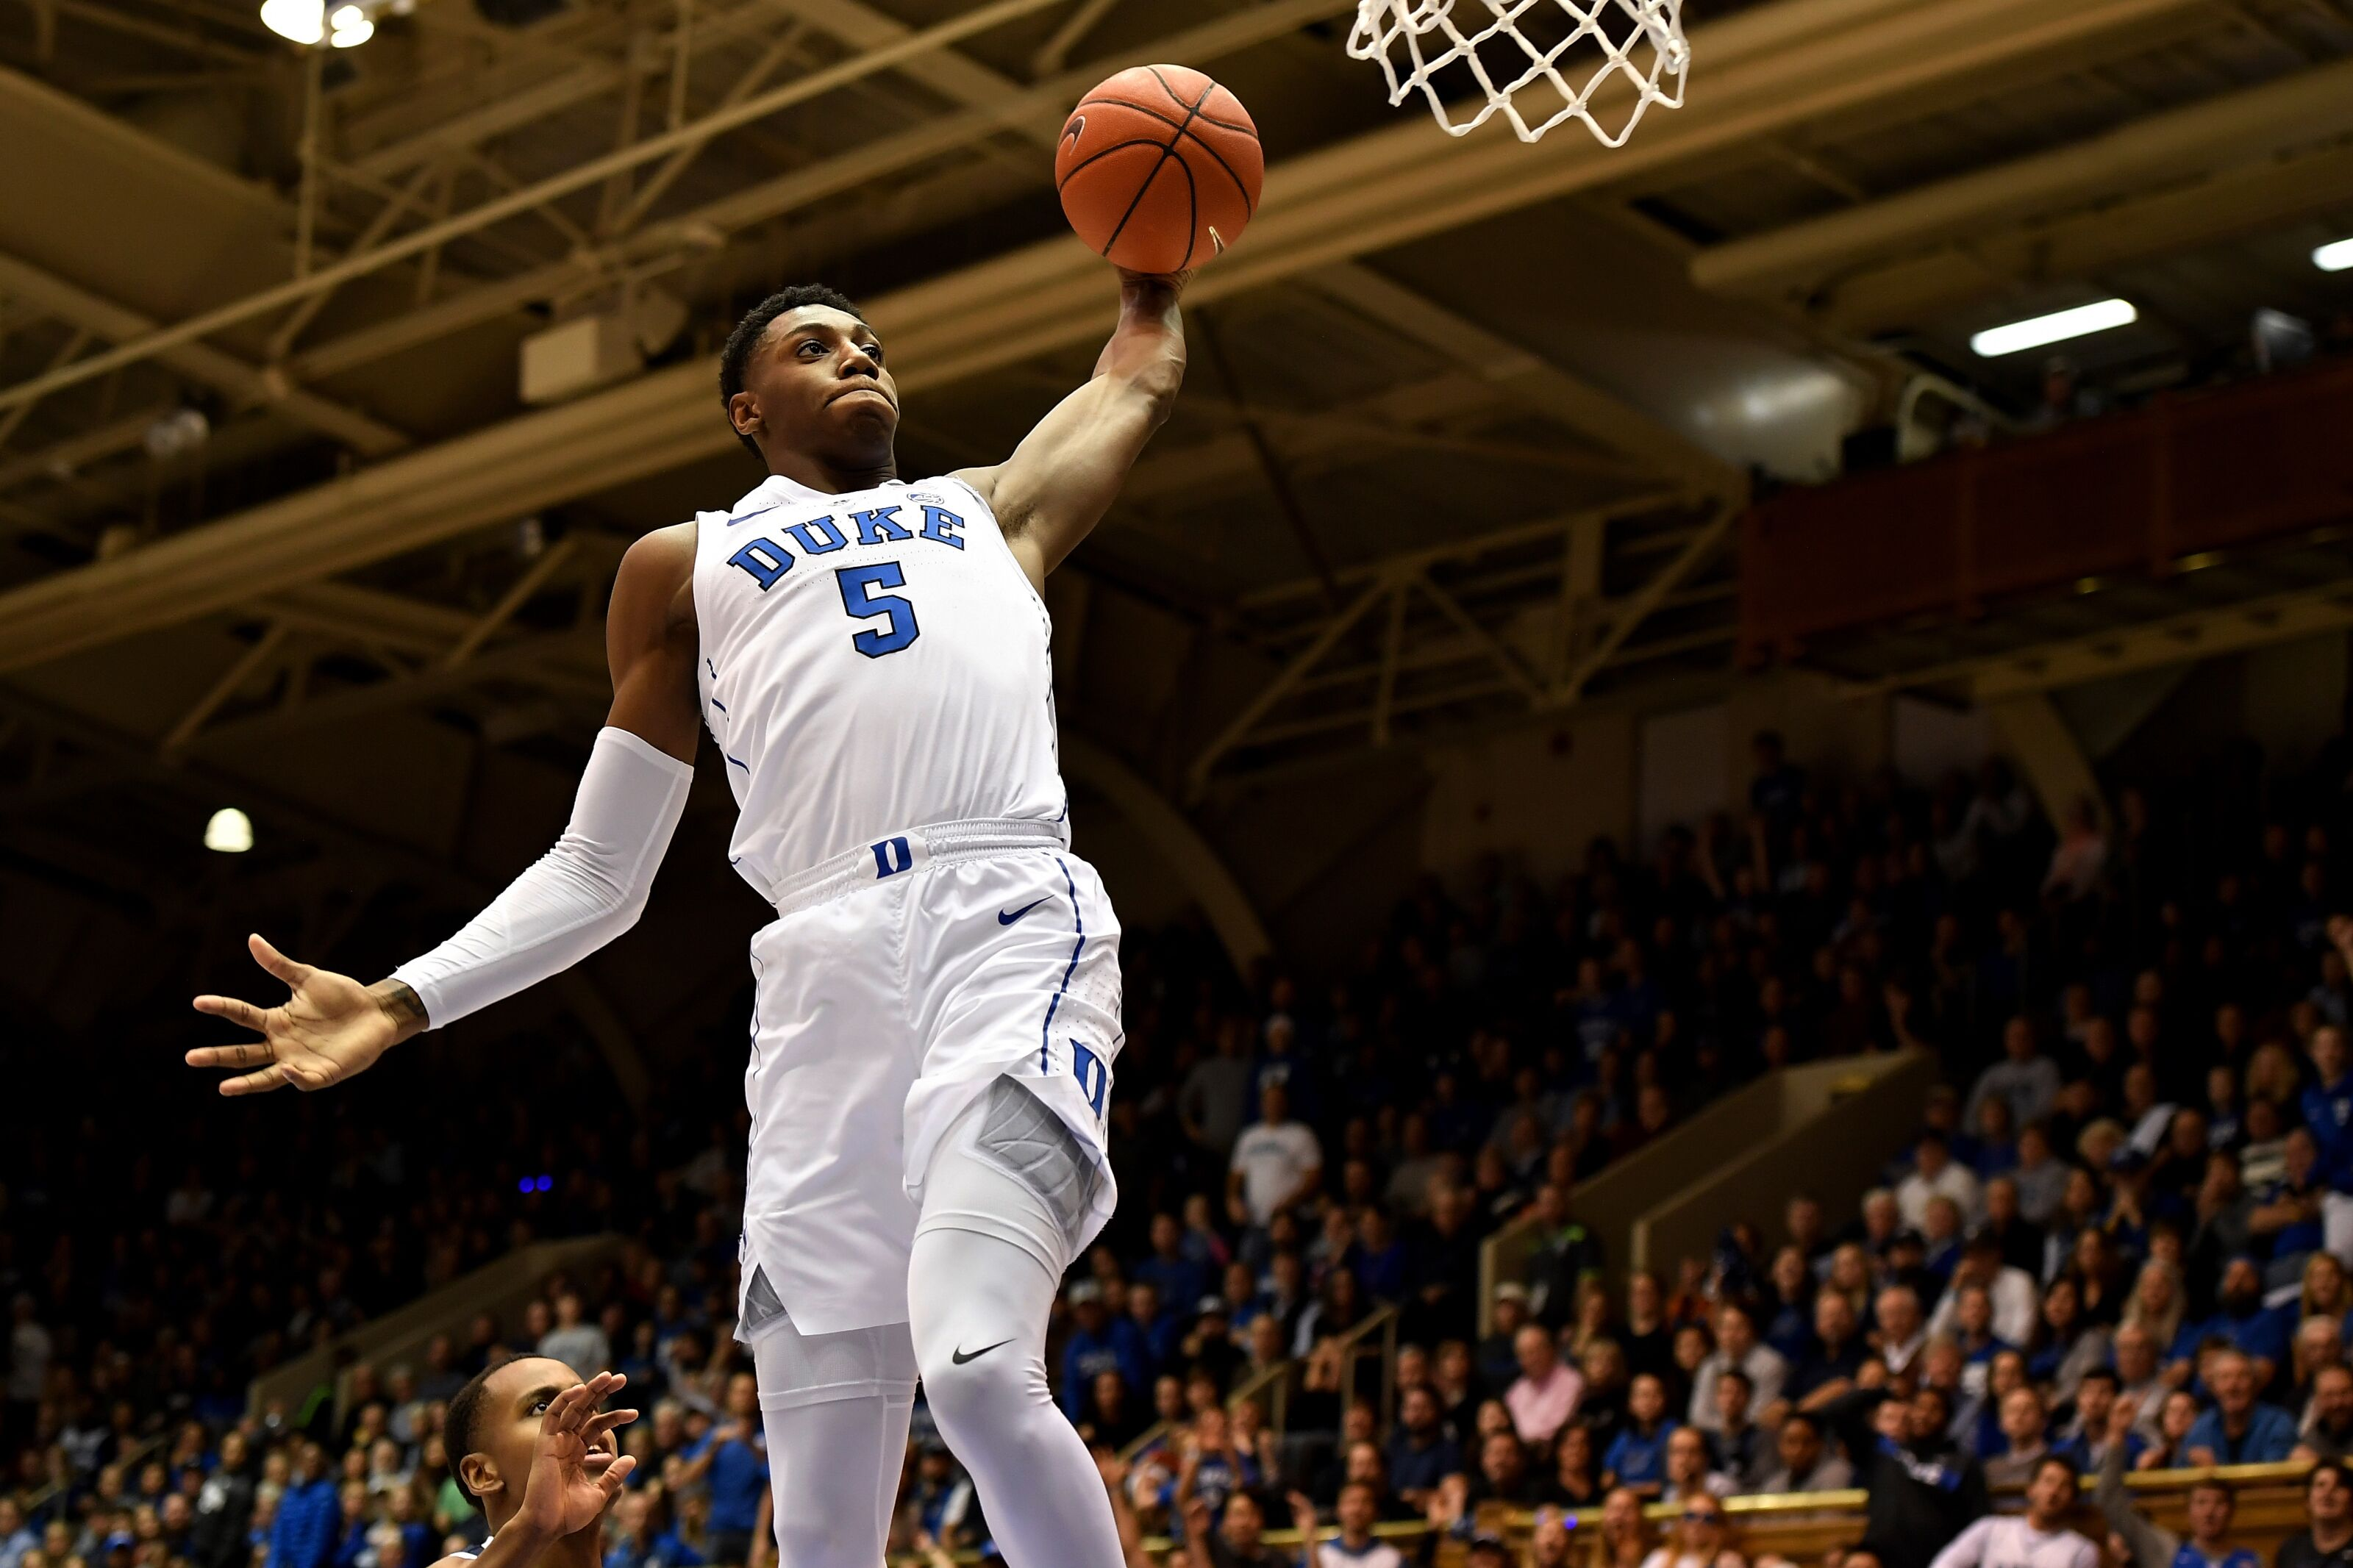 Duke Basketball Blue Devils At Halftime Against Princeton In Return To